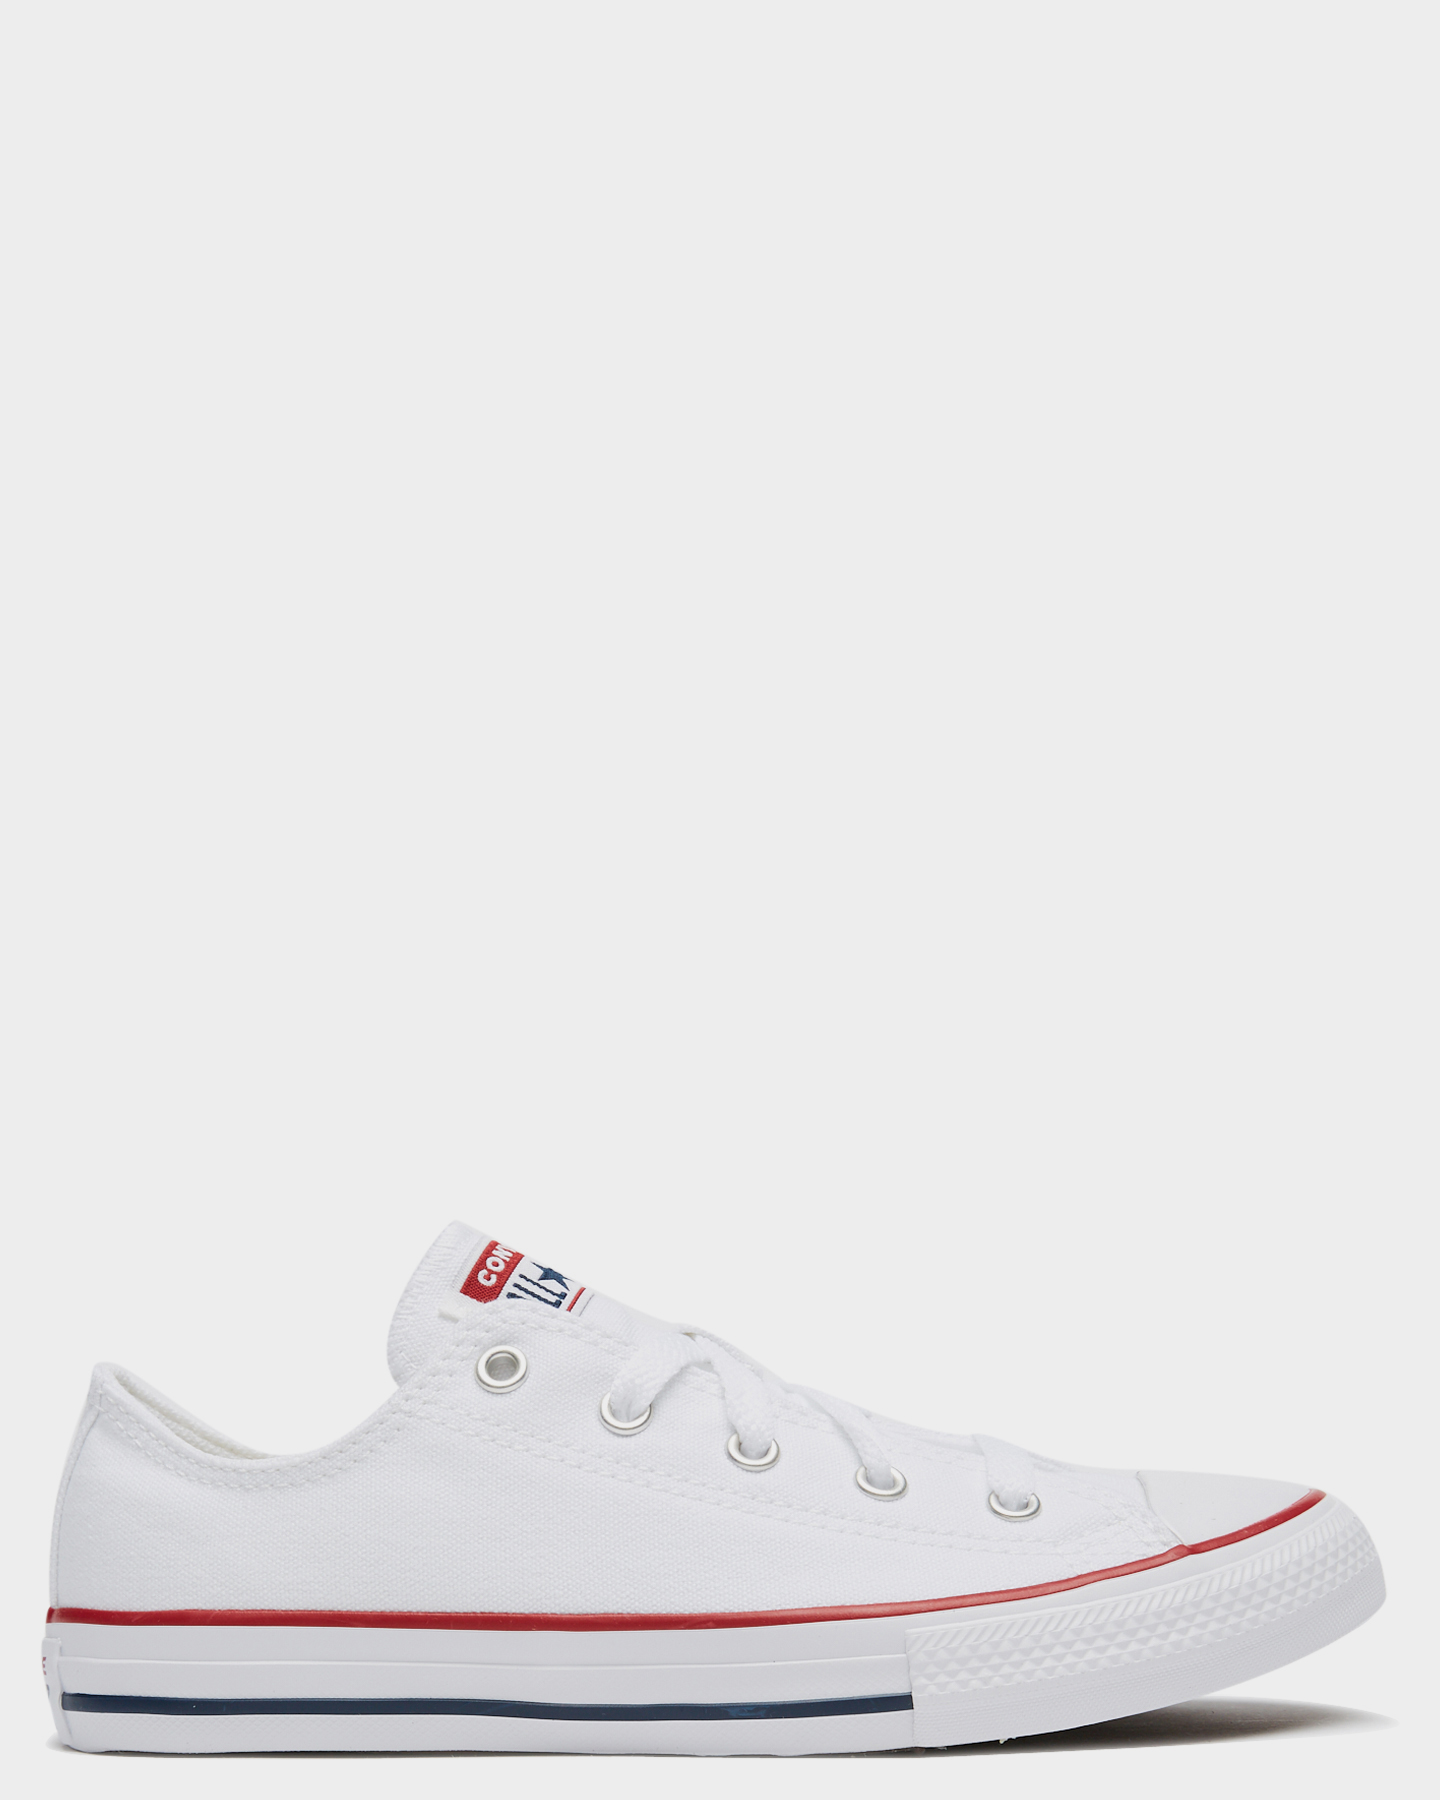 Converse Chuck Taylor All Star Shoe - Youth Optical White